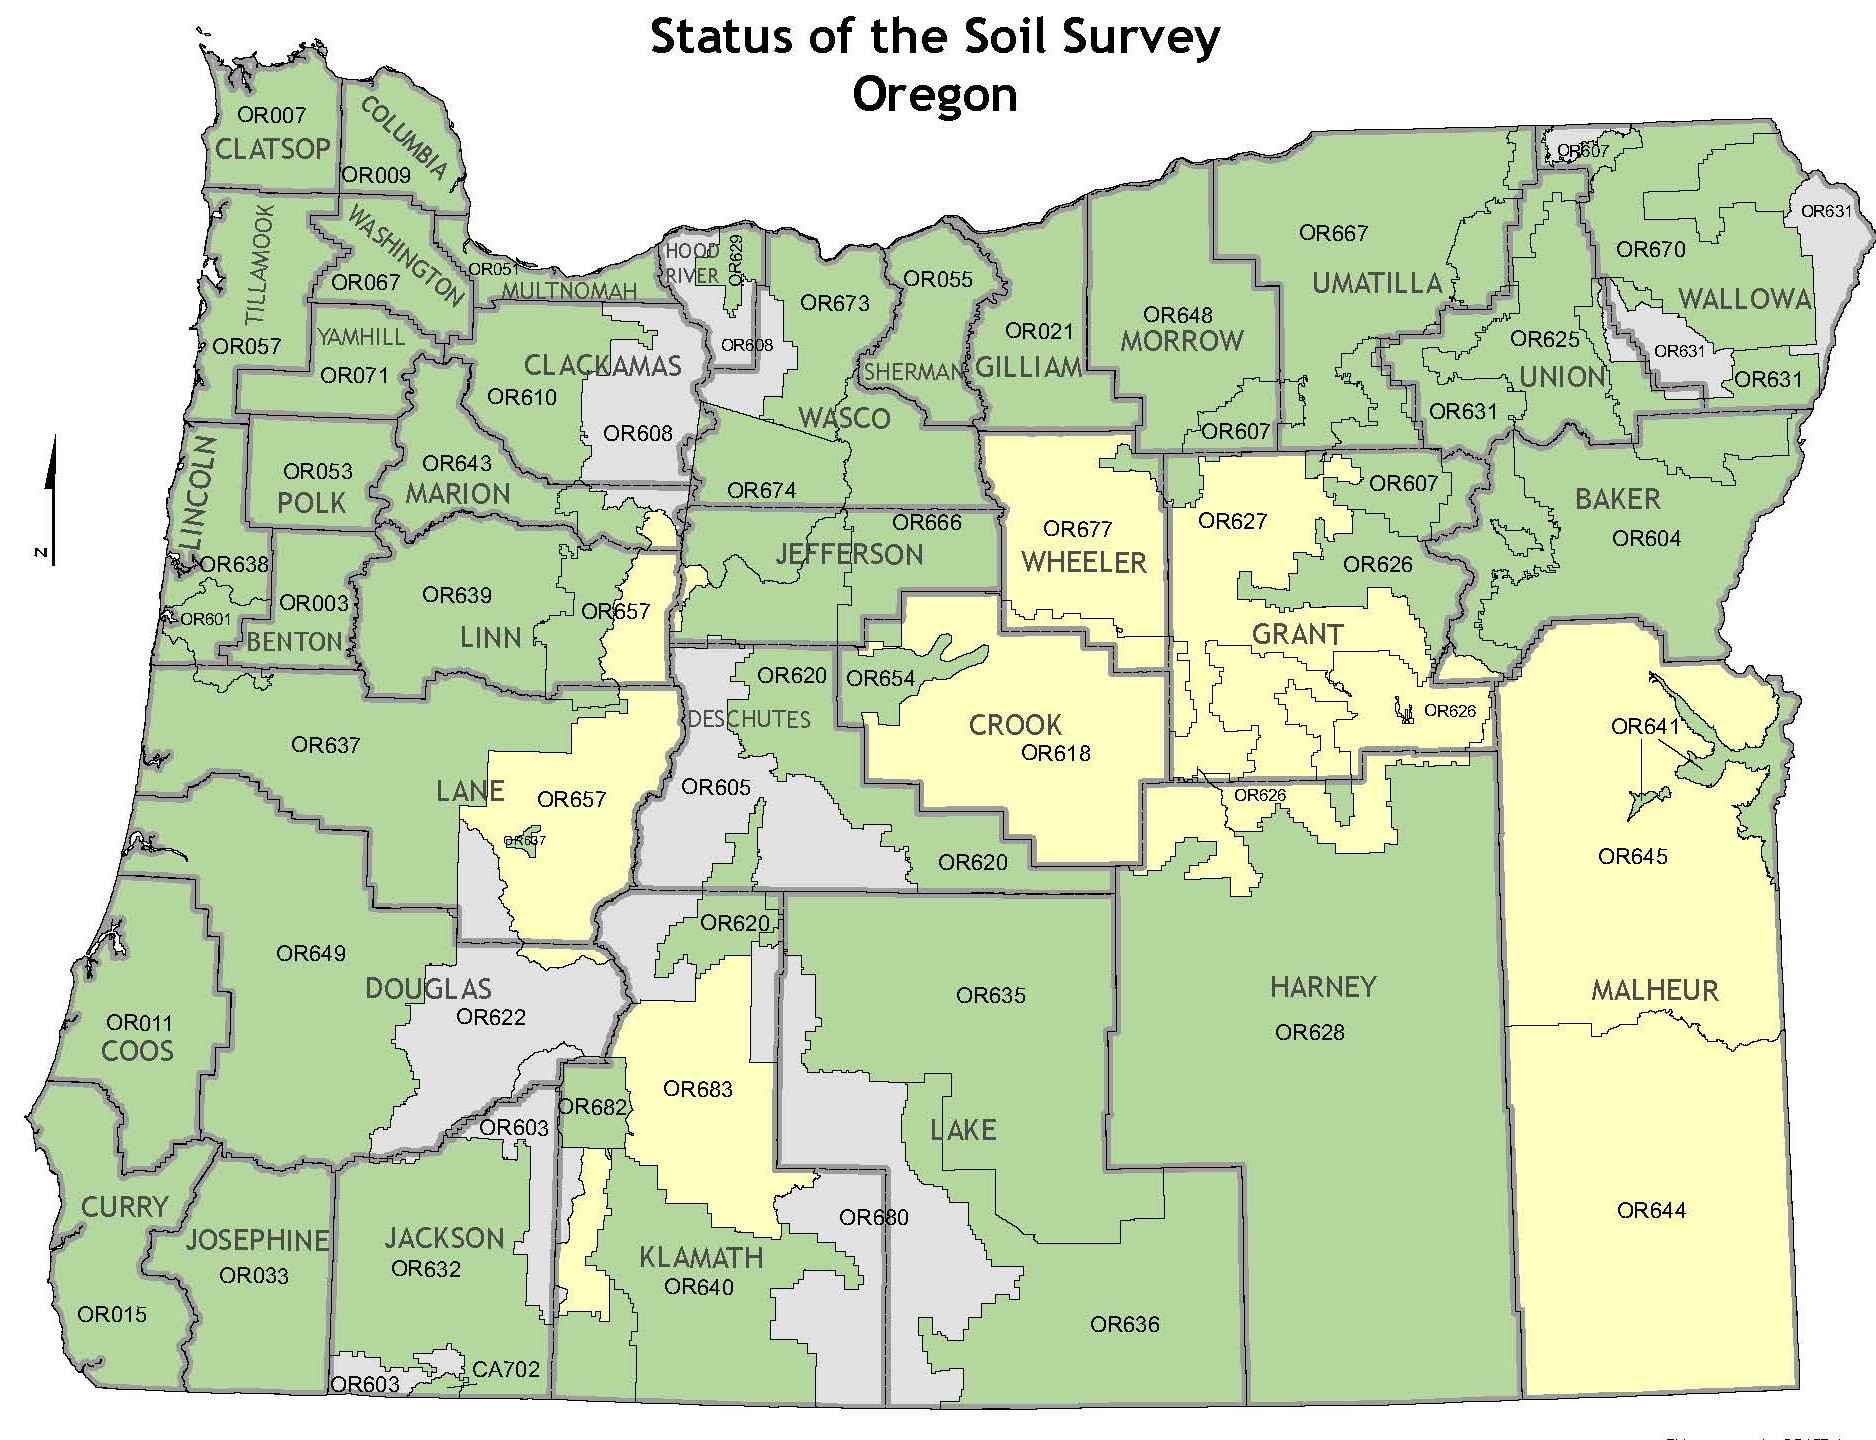 Soil Survey Status Map